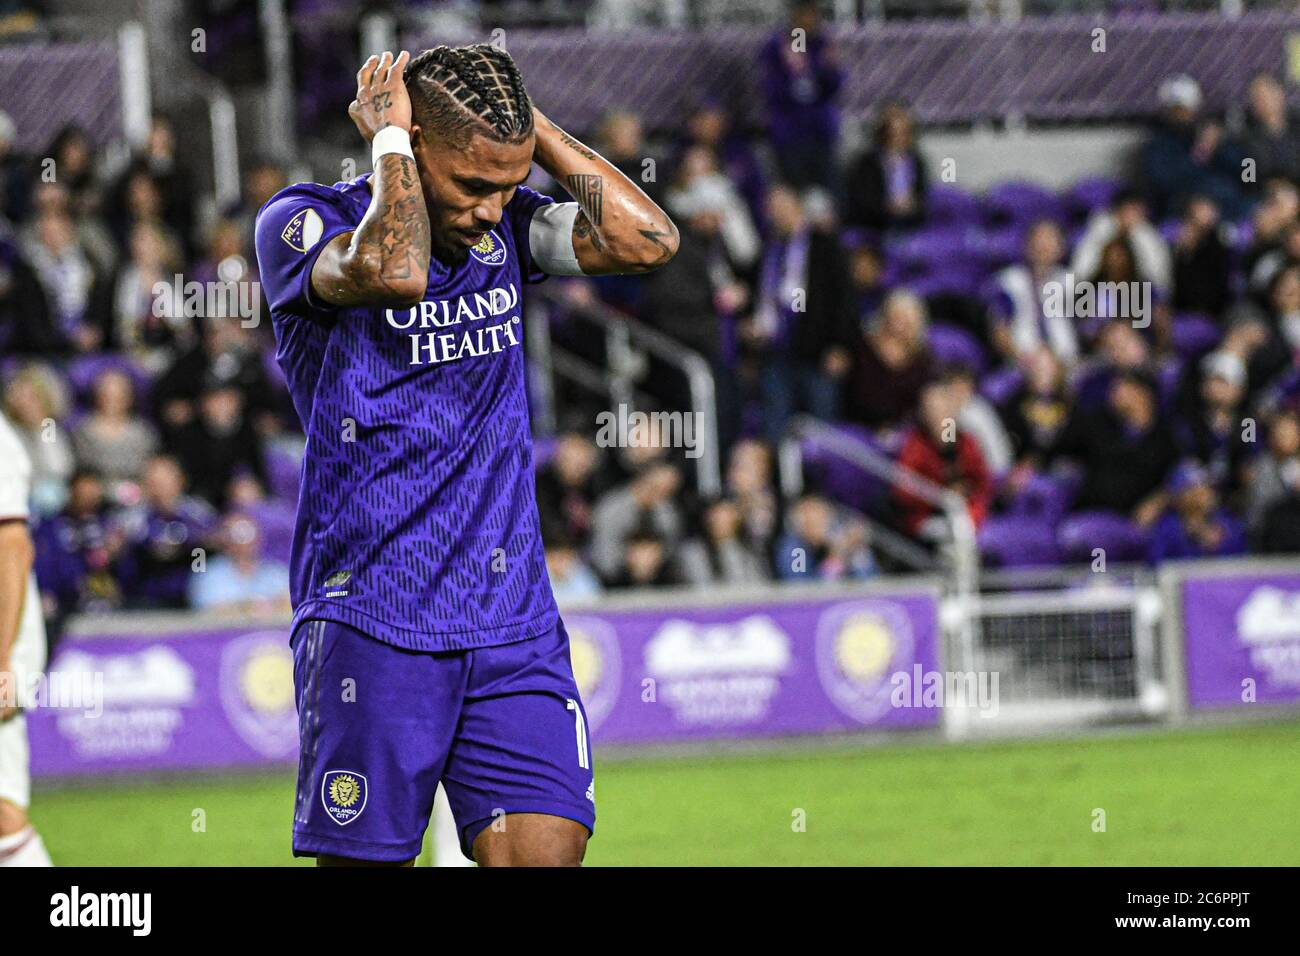 Orlando City SC player Junior Urso dissapointed after almost making a goal at Exploria Stadium on Saturday February 29, 2020.  Photo Credit:  Marty Jean-Louis Stock Photo